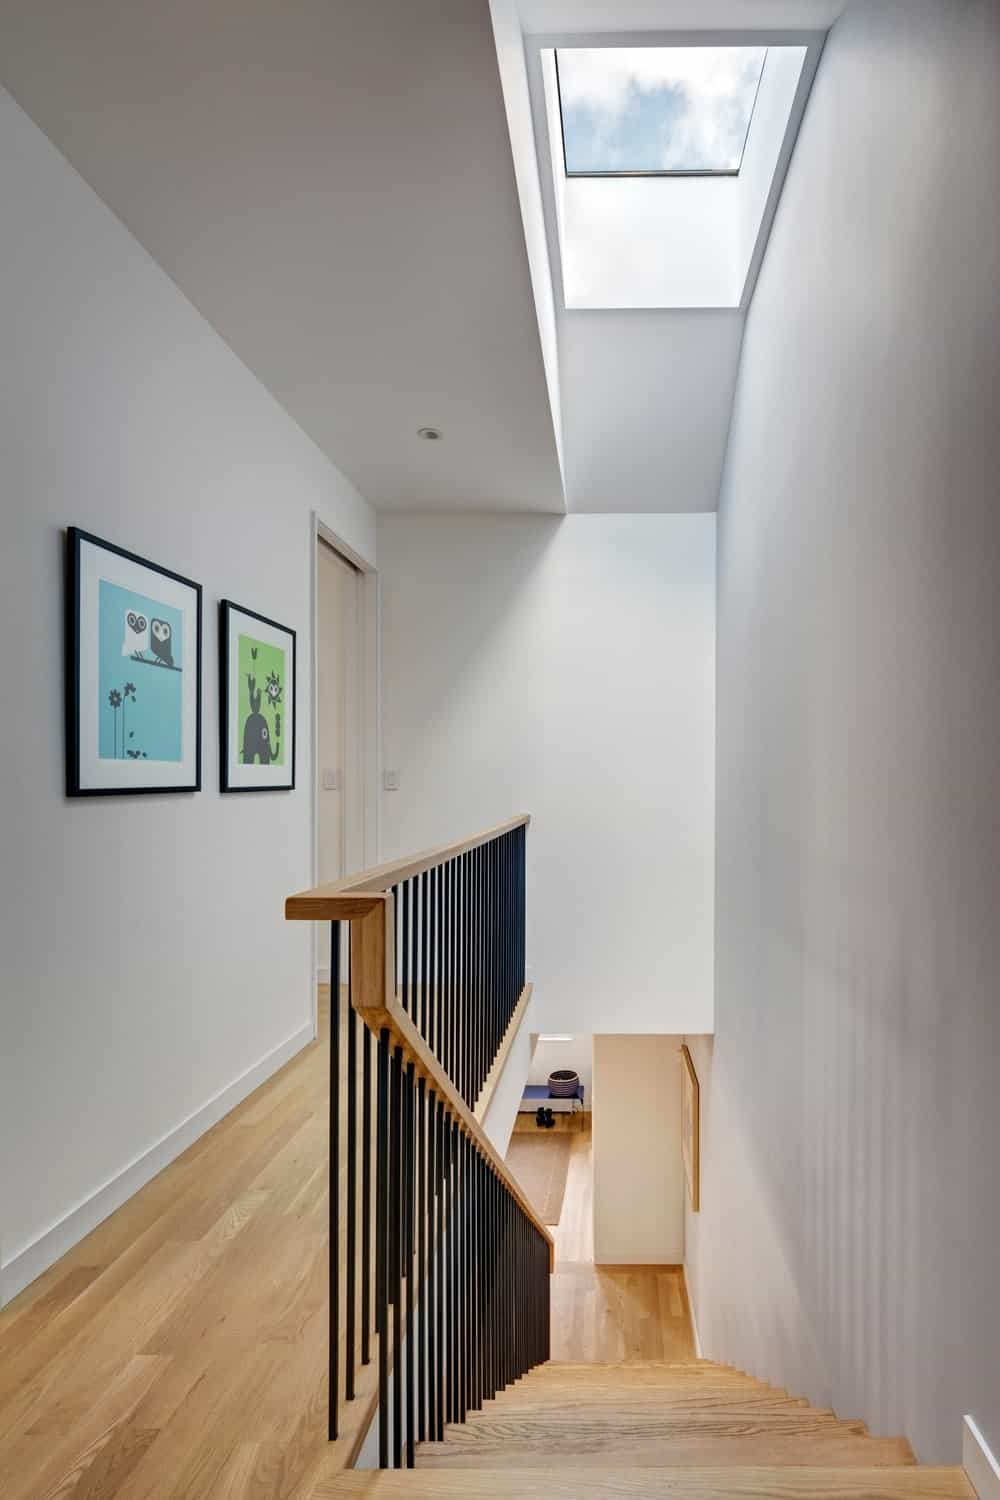 Straight staircase with vinyl flooring and white walls. Photo Credit: Francis Dzikowski/OTTO